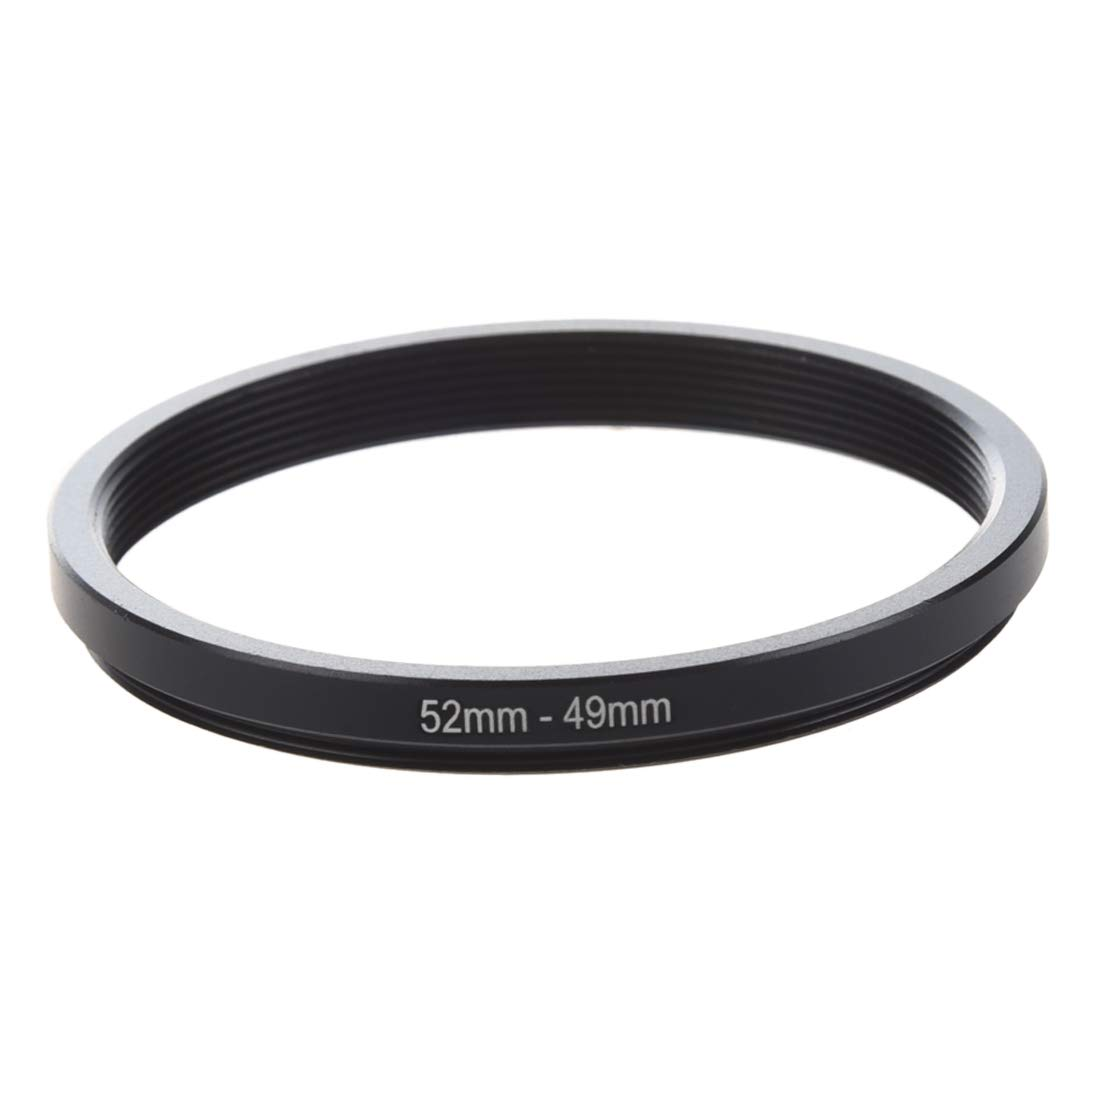 SODIAL(R) 52mm-49mm 52mm to 49mm Black Step Down Ring Adapter for Camera 008309